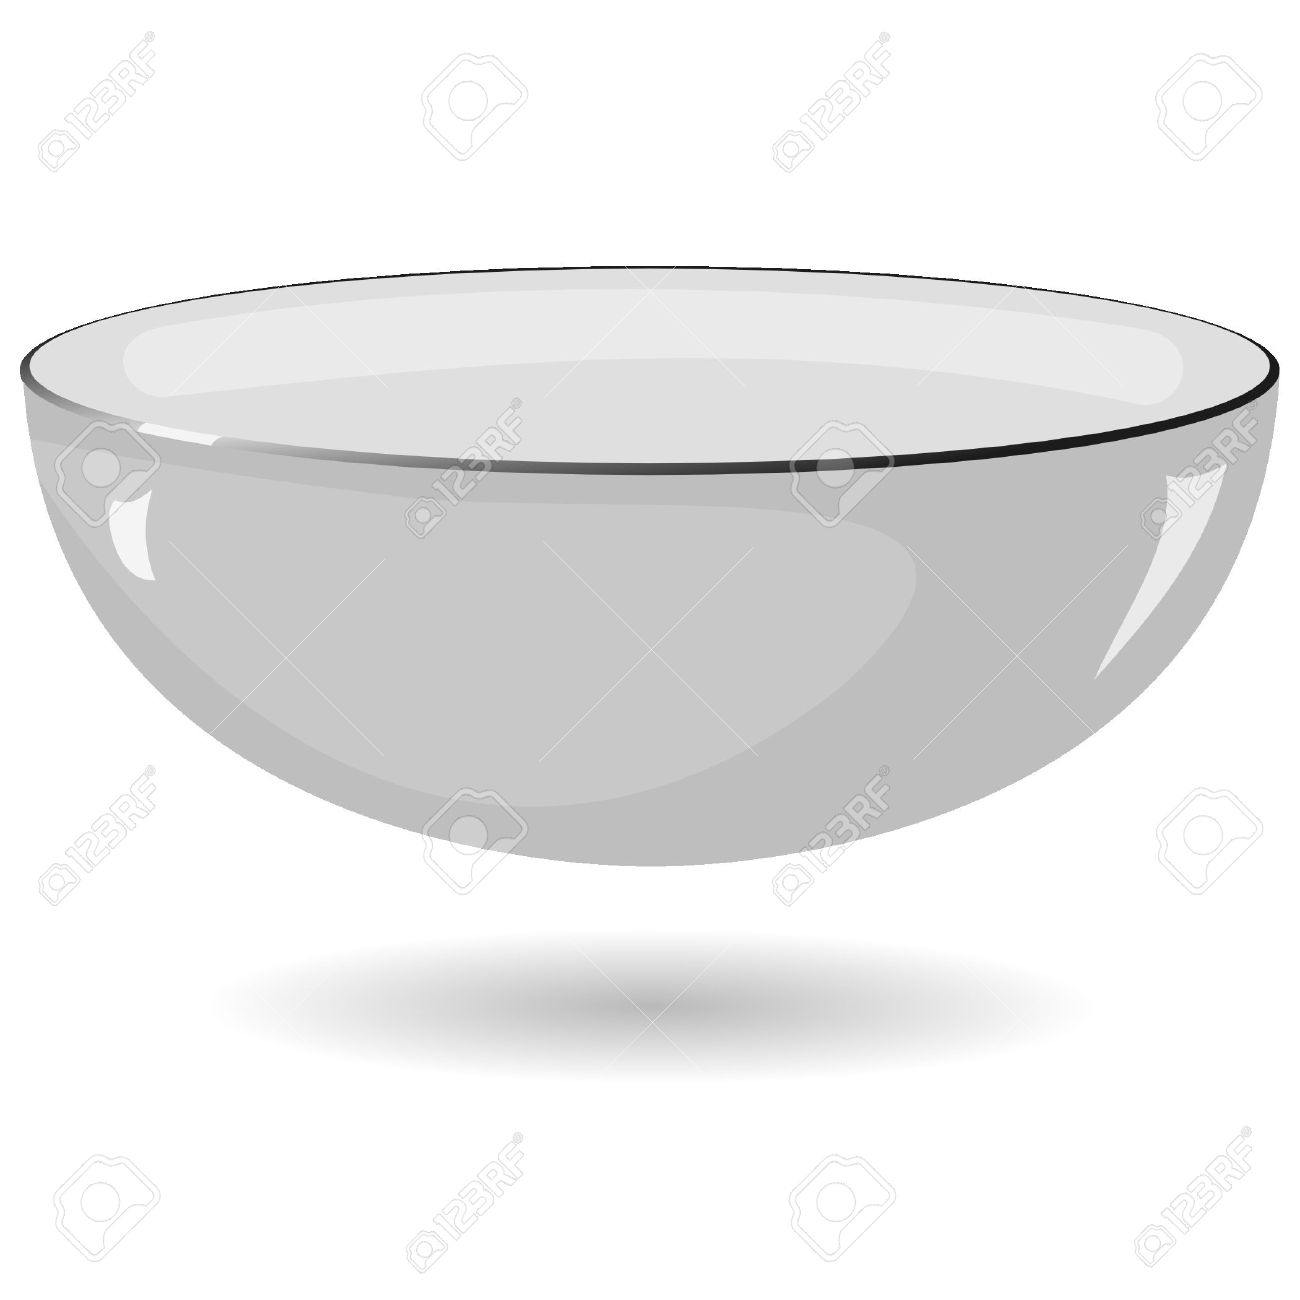 Vector illustration of a metal bowl on a white background Stock Vector - 11942720